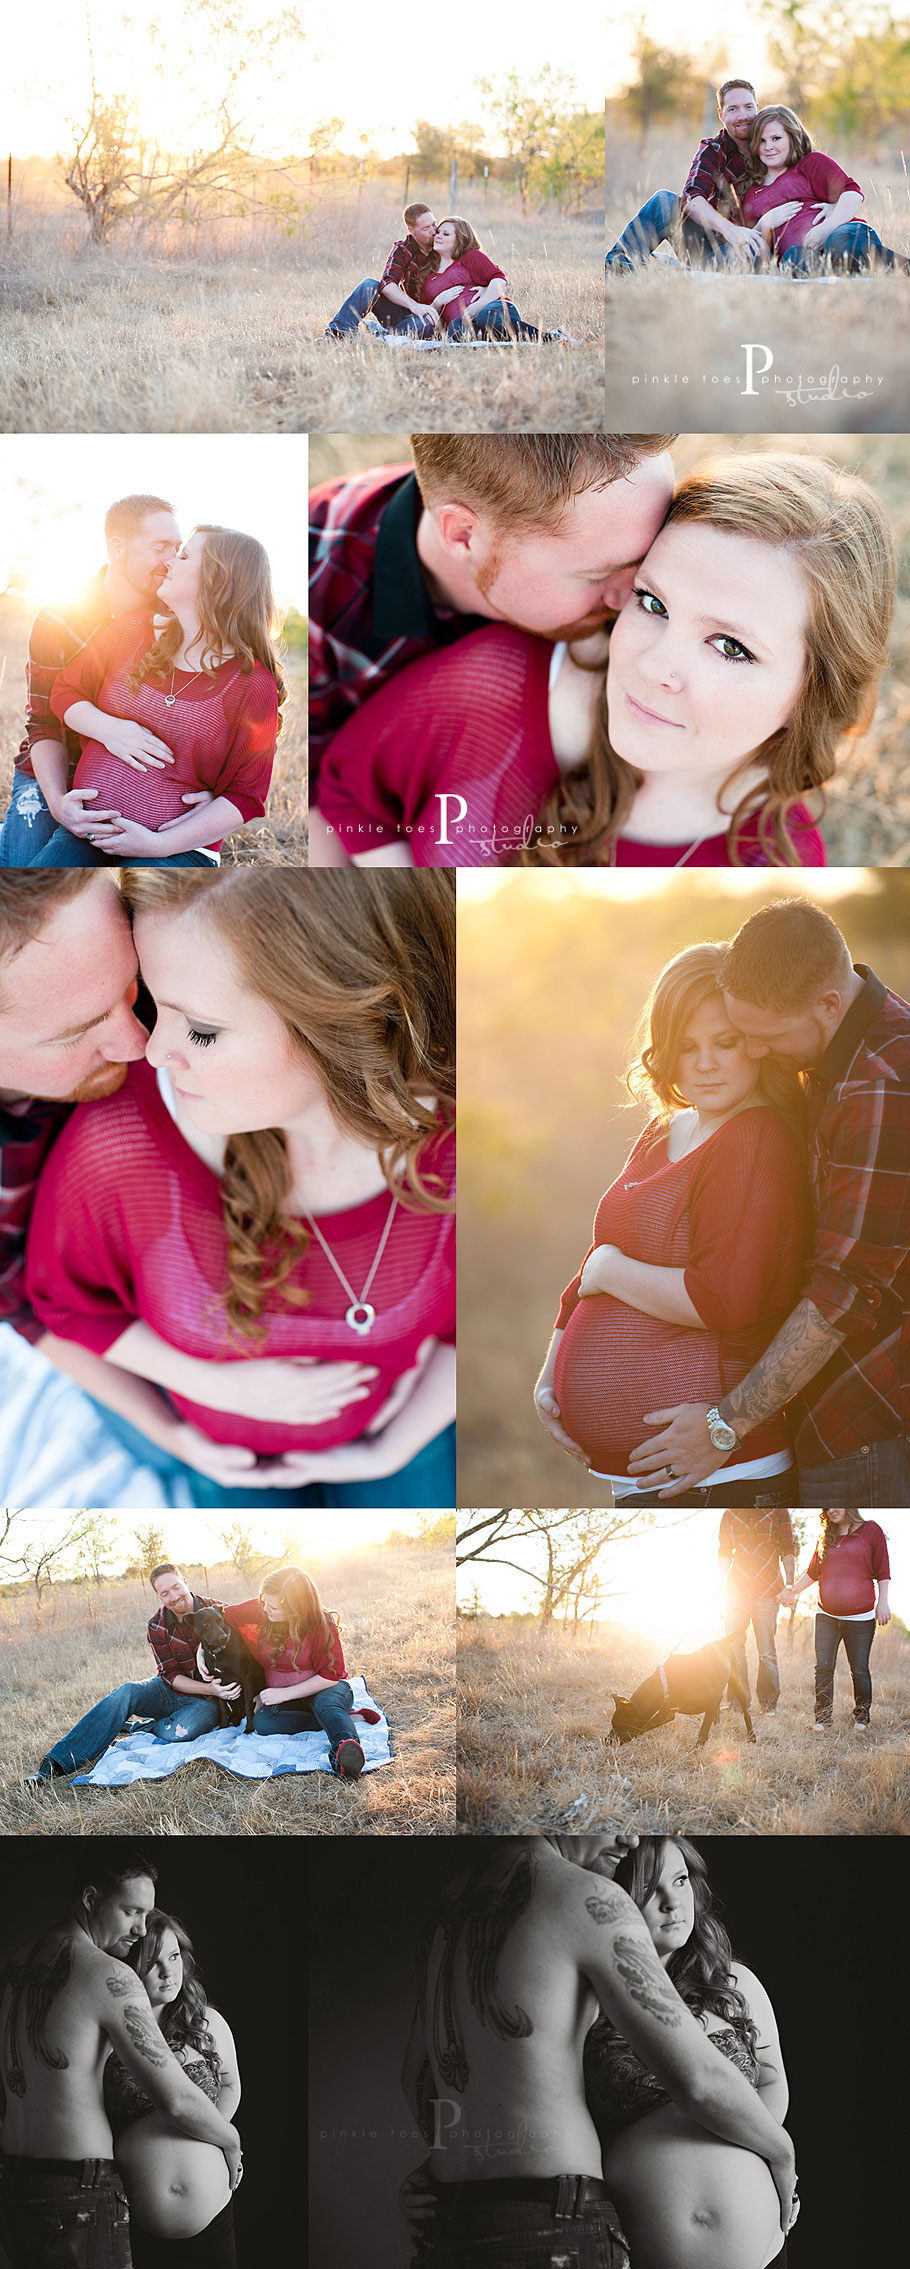 austin-maternity-pregnancy-studio-photography.jpg